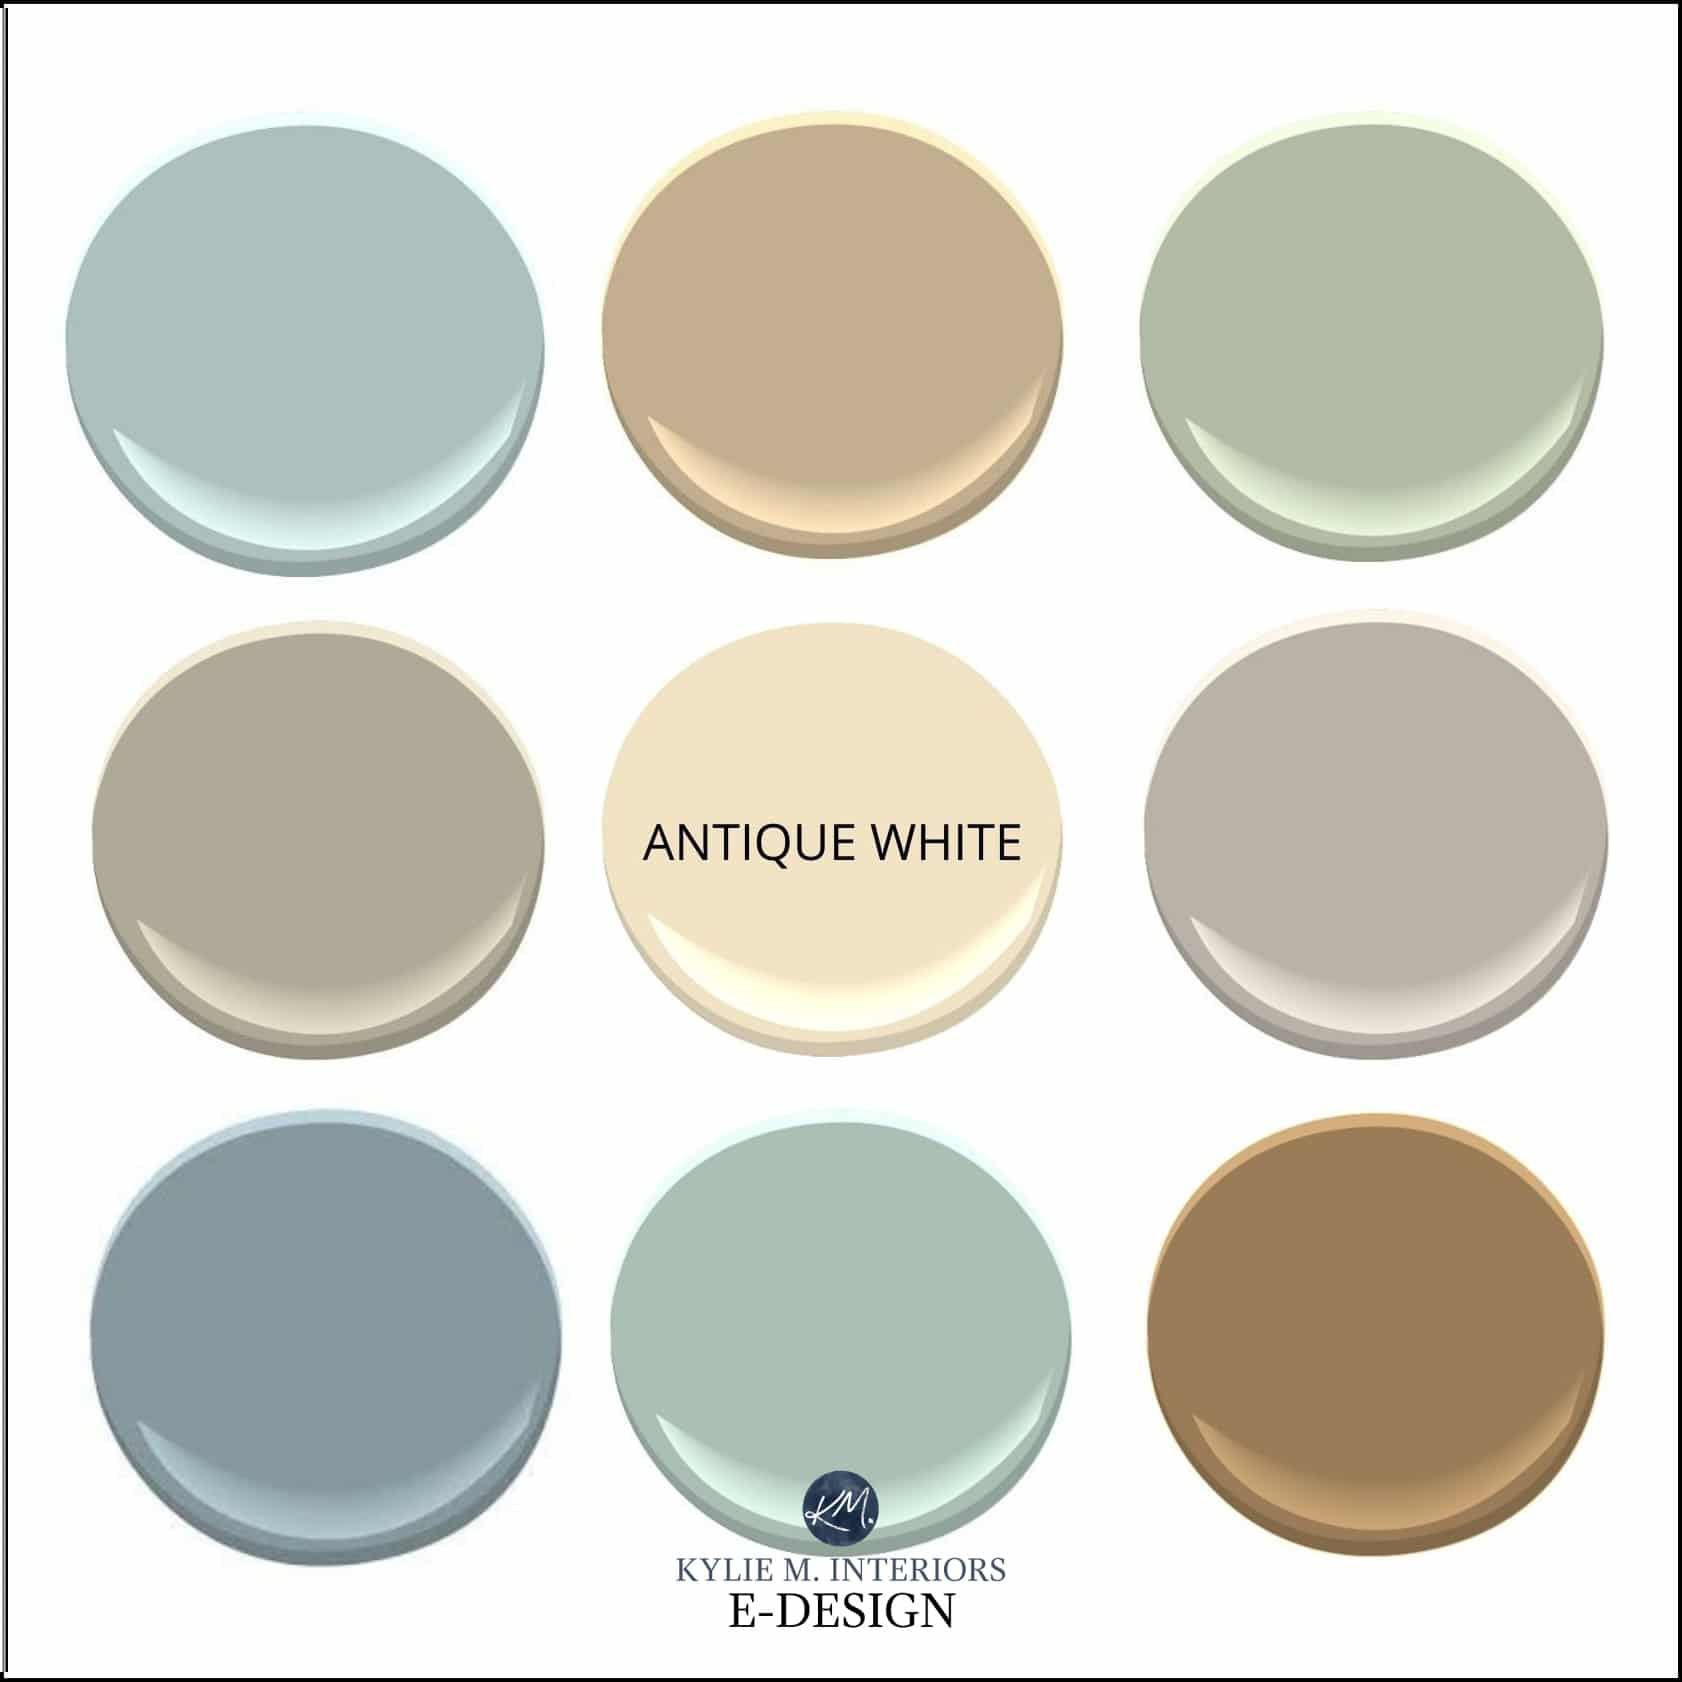 Paint Colour Review Sherwin Williams Antique White Sw 6119 Kylie M Interiors